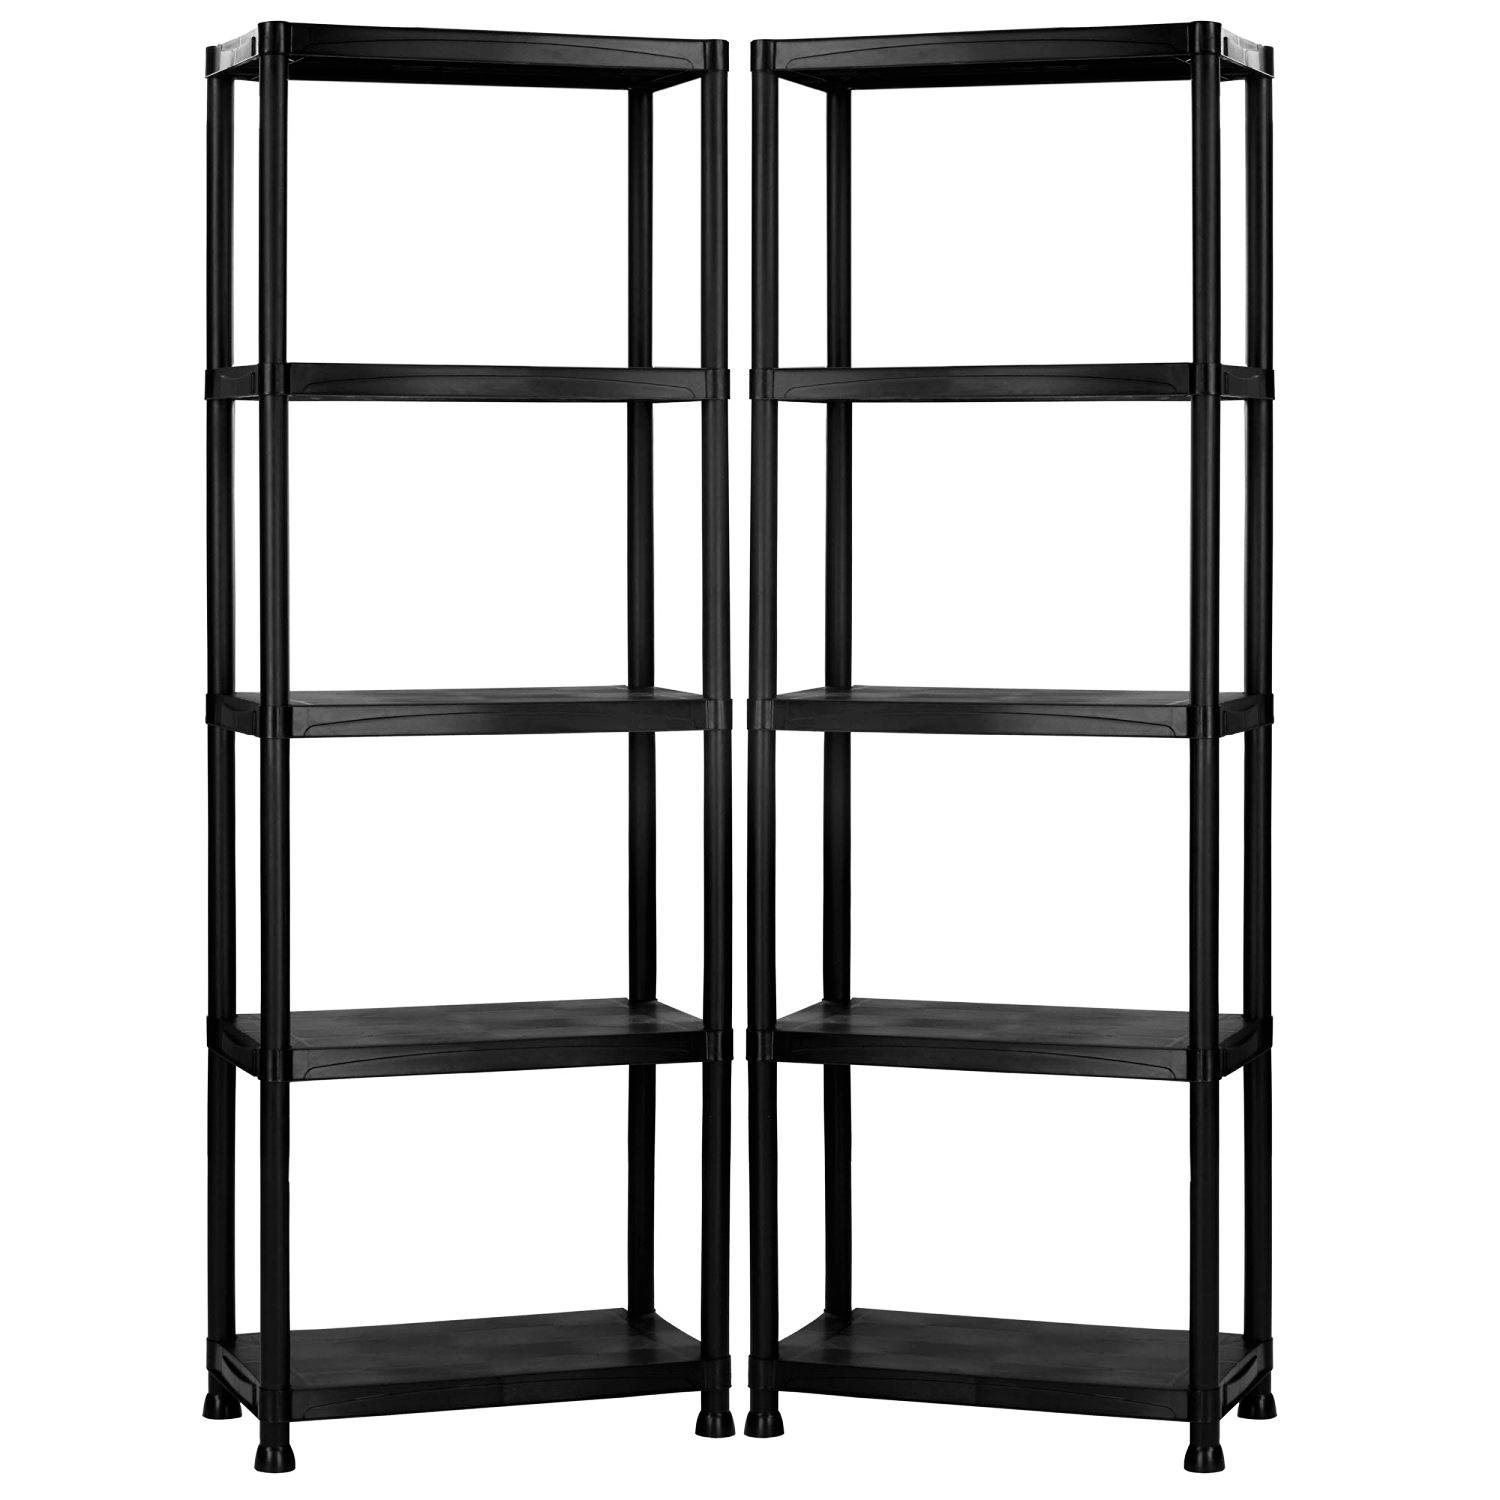 5 tier black plastic heavy duty shelving racking storage unit oypla stocking the. Black Bedroom Furniture Sets. Home Design Ideas